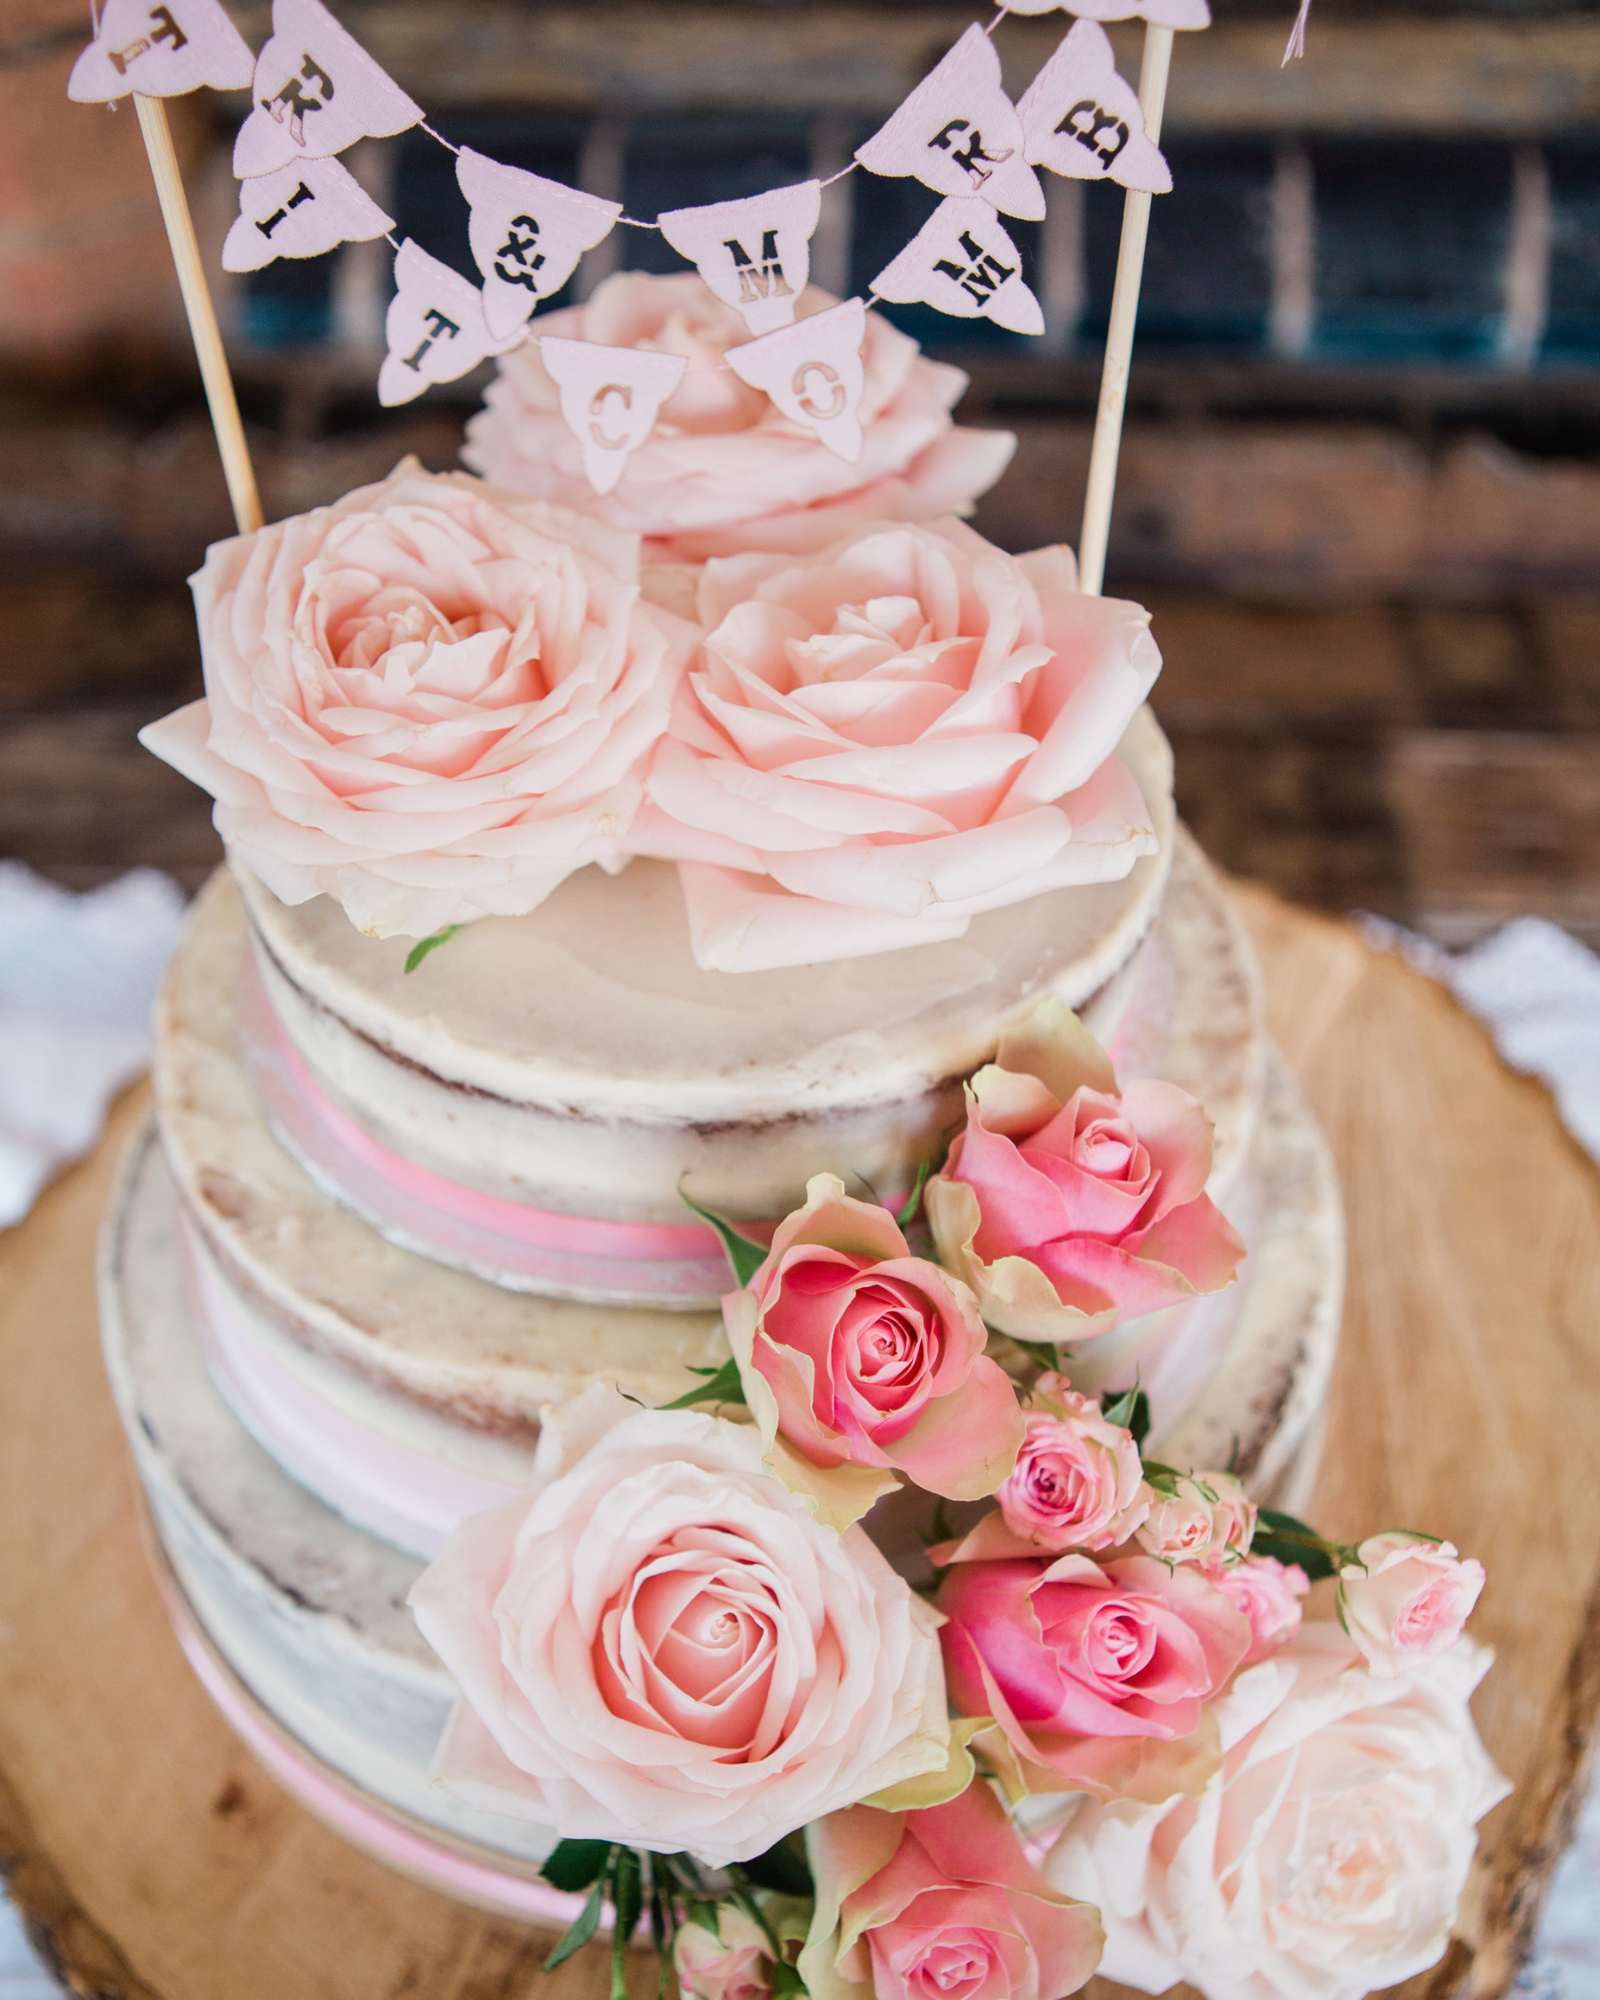 Vintage wedding cake decorated with roses